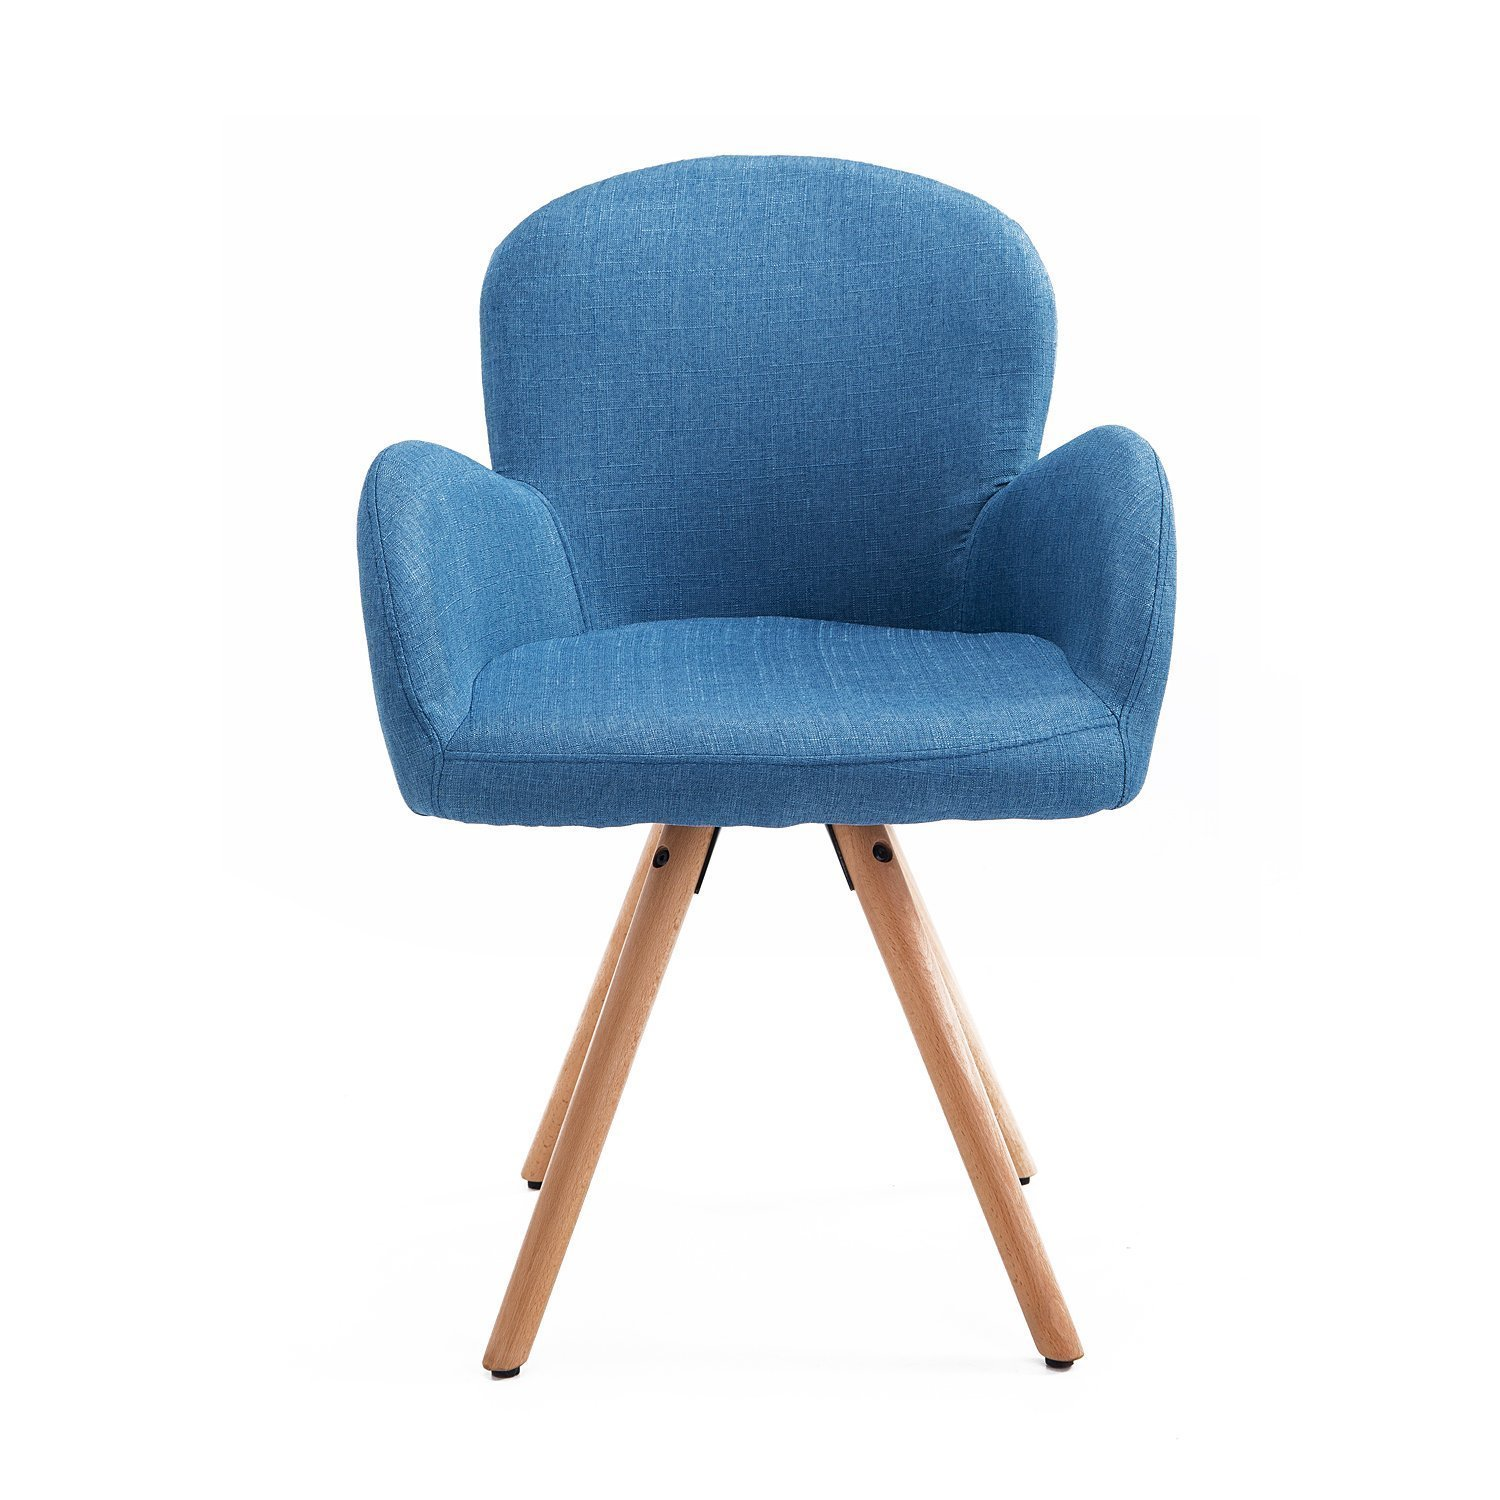 HOMCOM Chair Armchair Modern Design Wooden Beech 55x53x81 Cm Blue